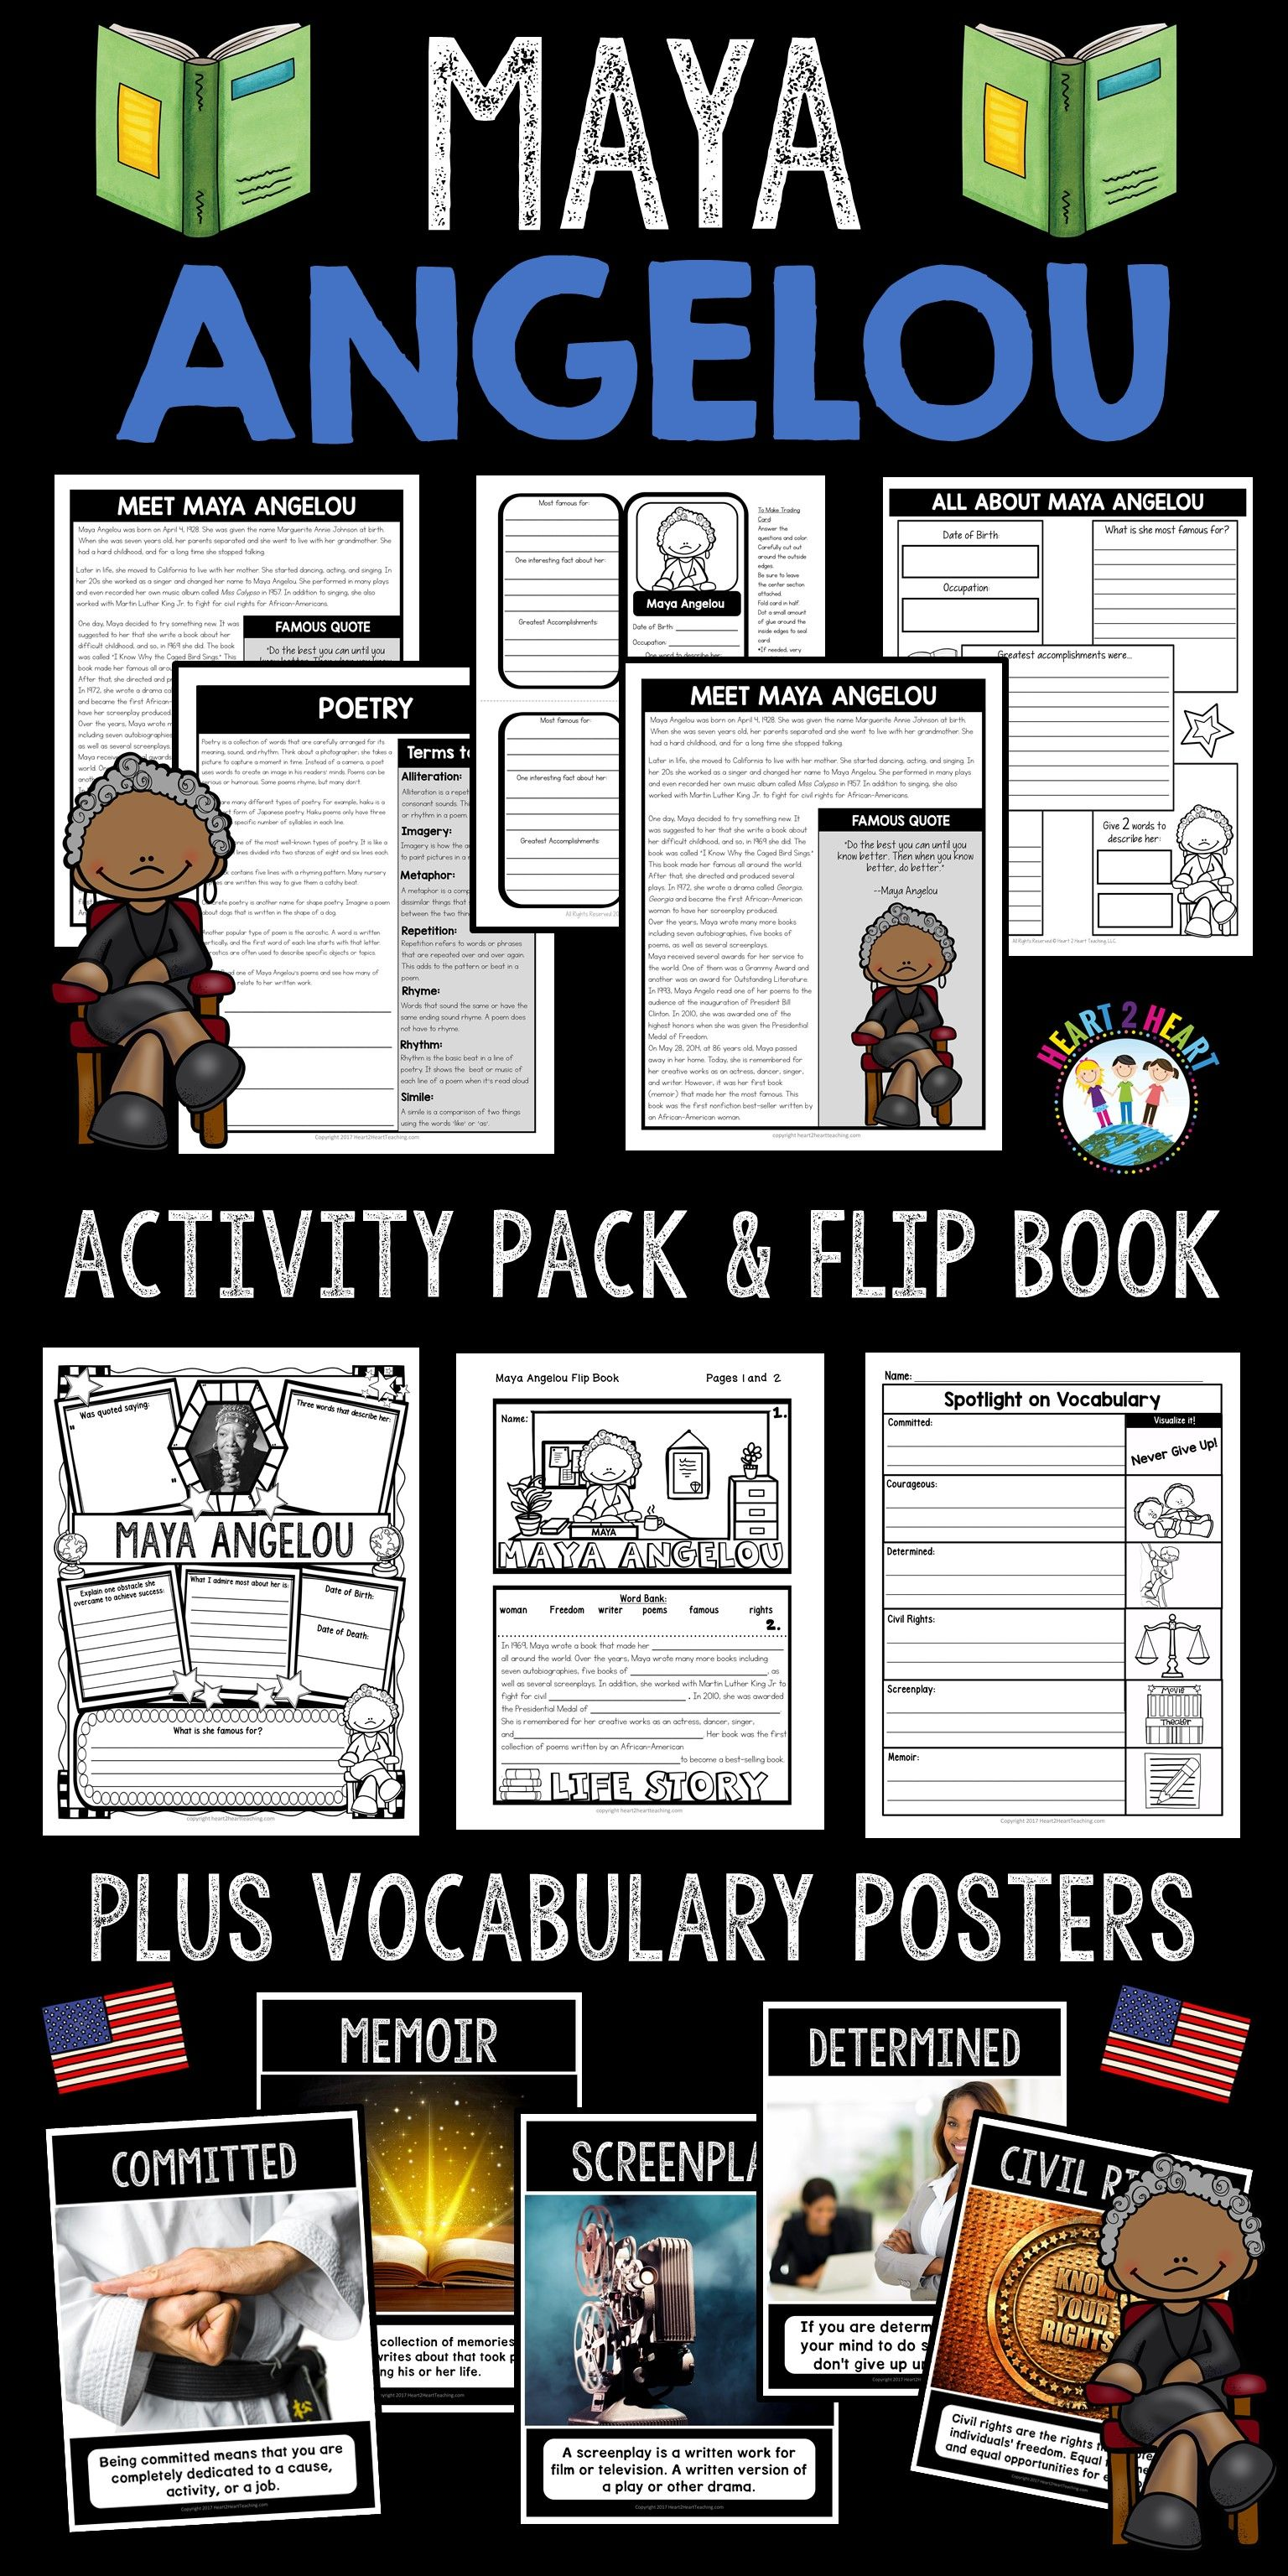 The Life Story Of Maya Angelou Activity Pack